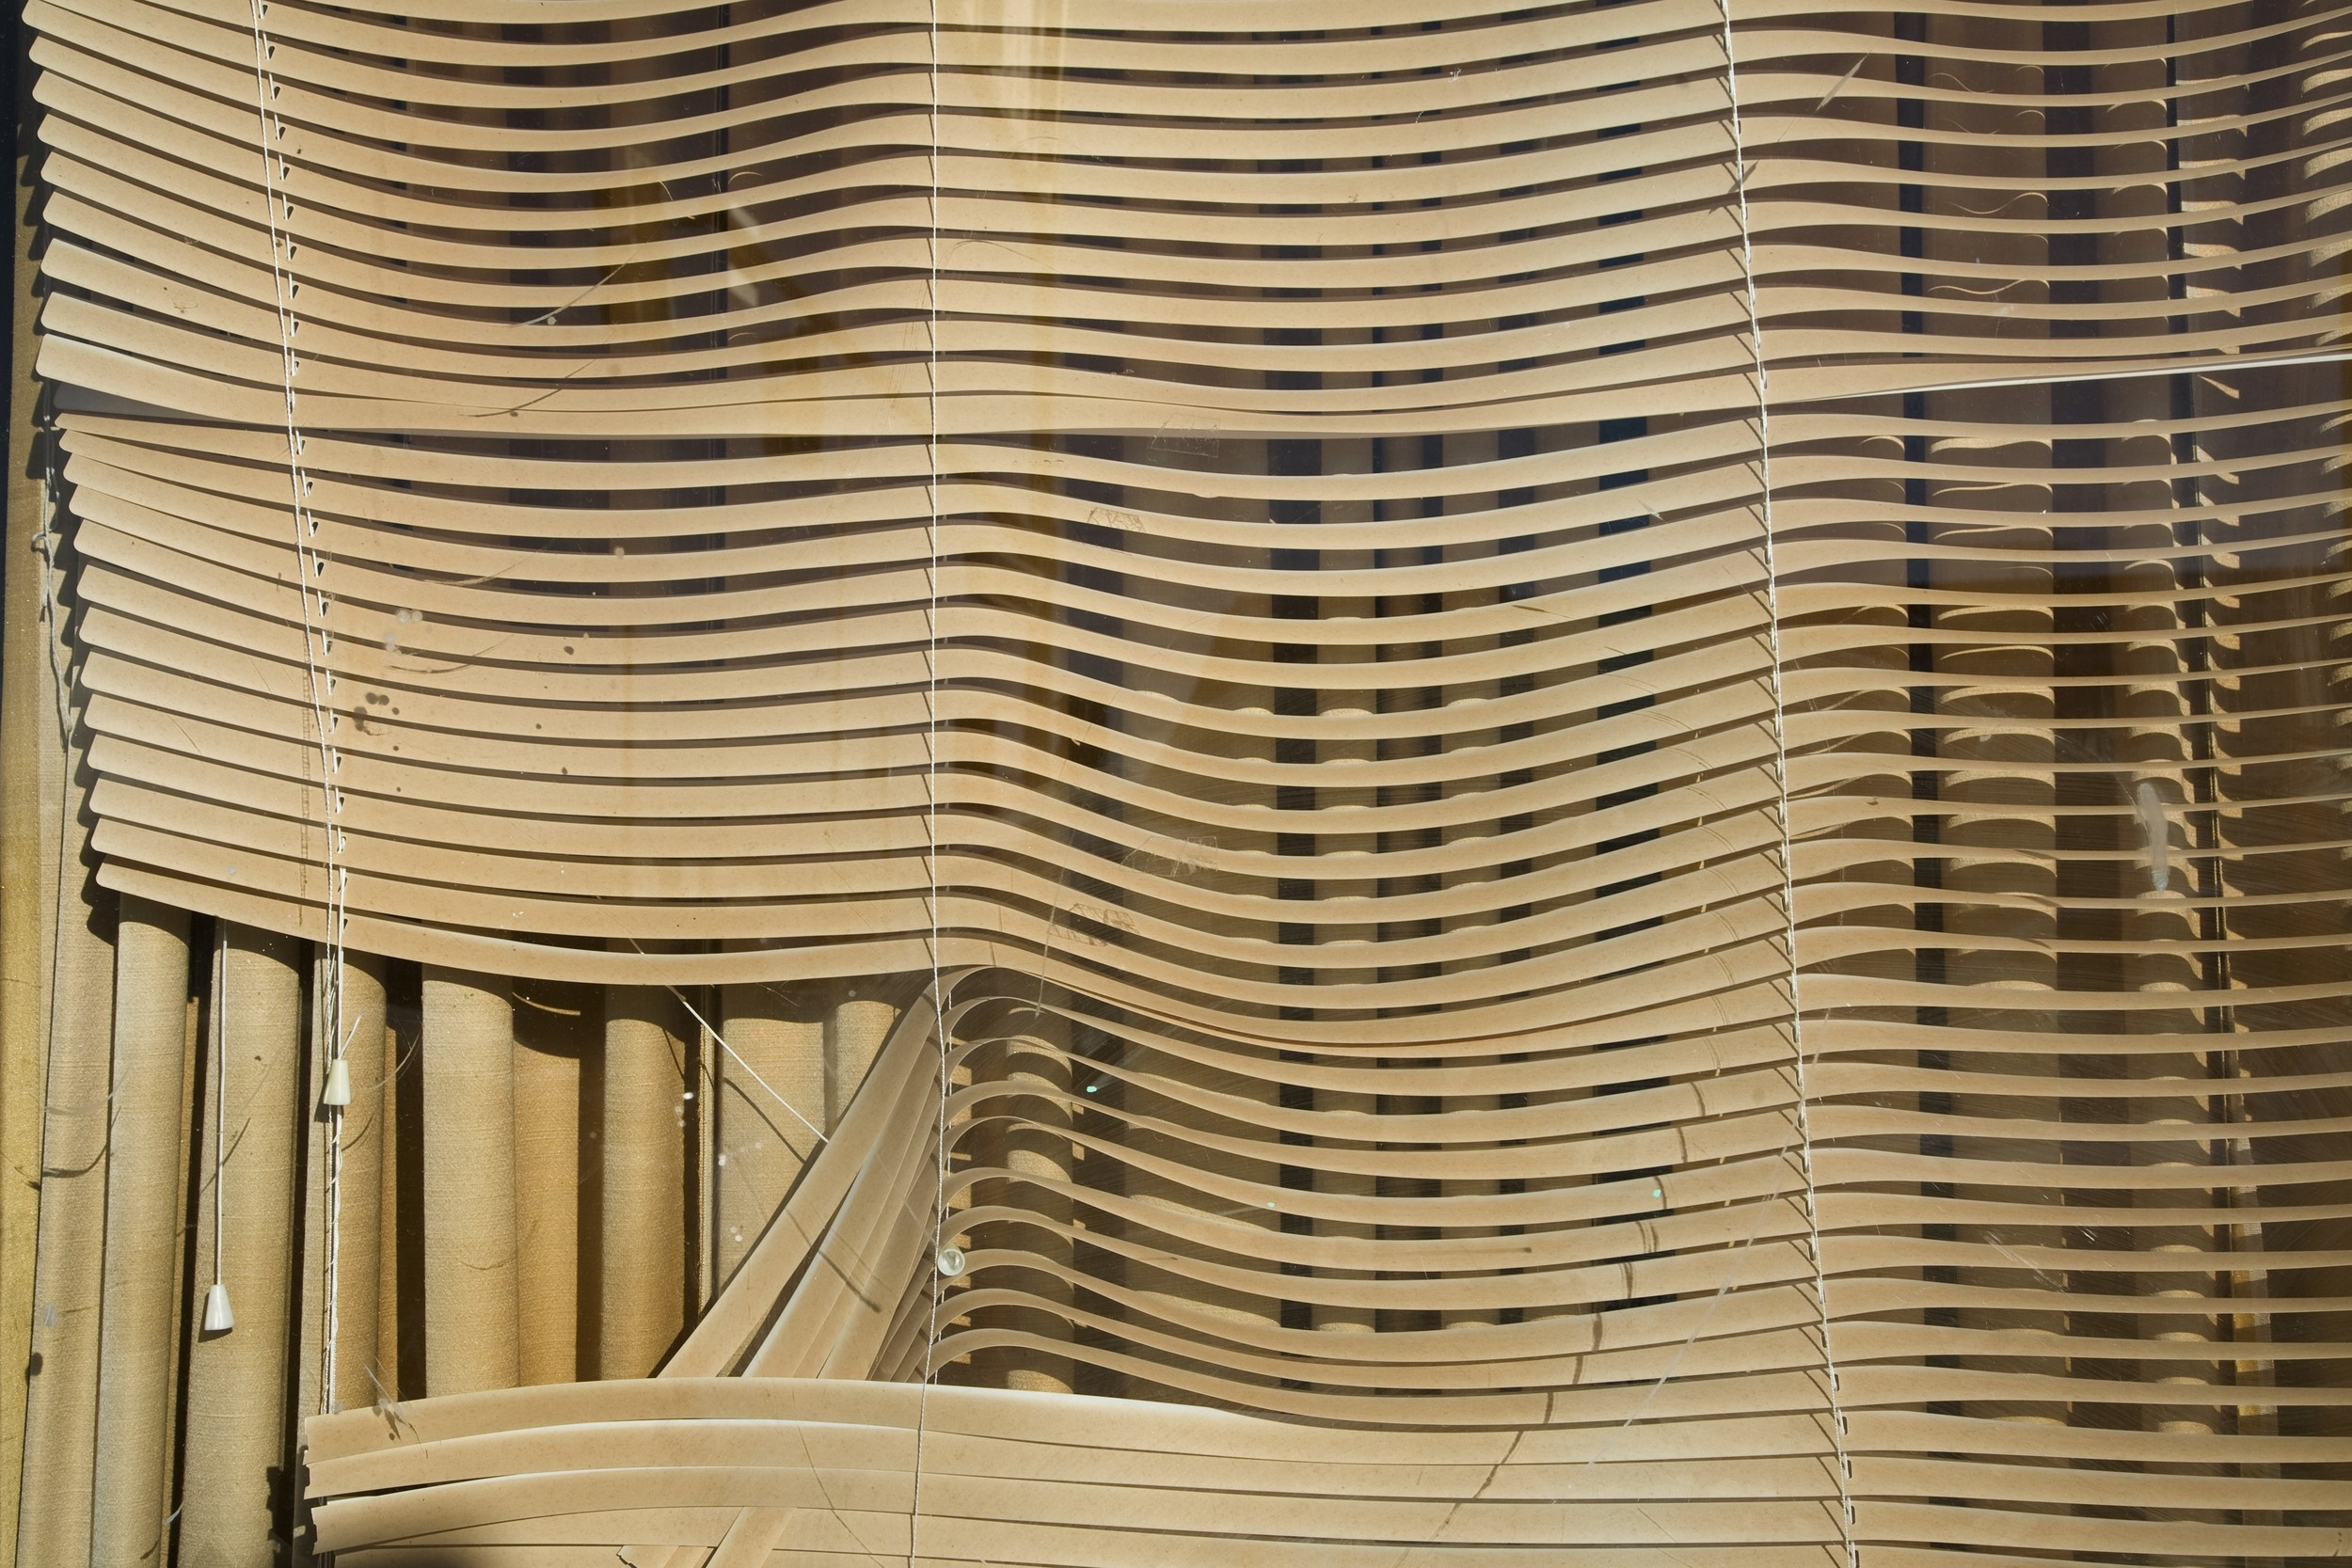 Venetian Blinds in the Sun,   2013